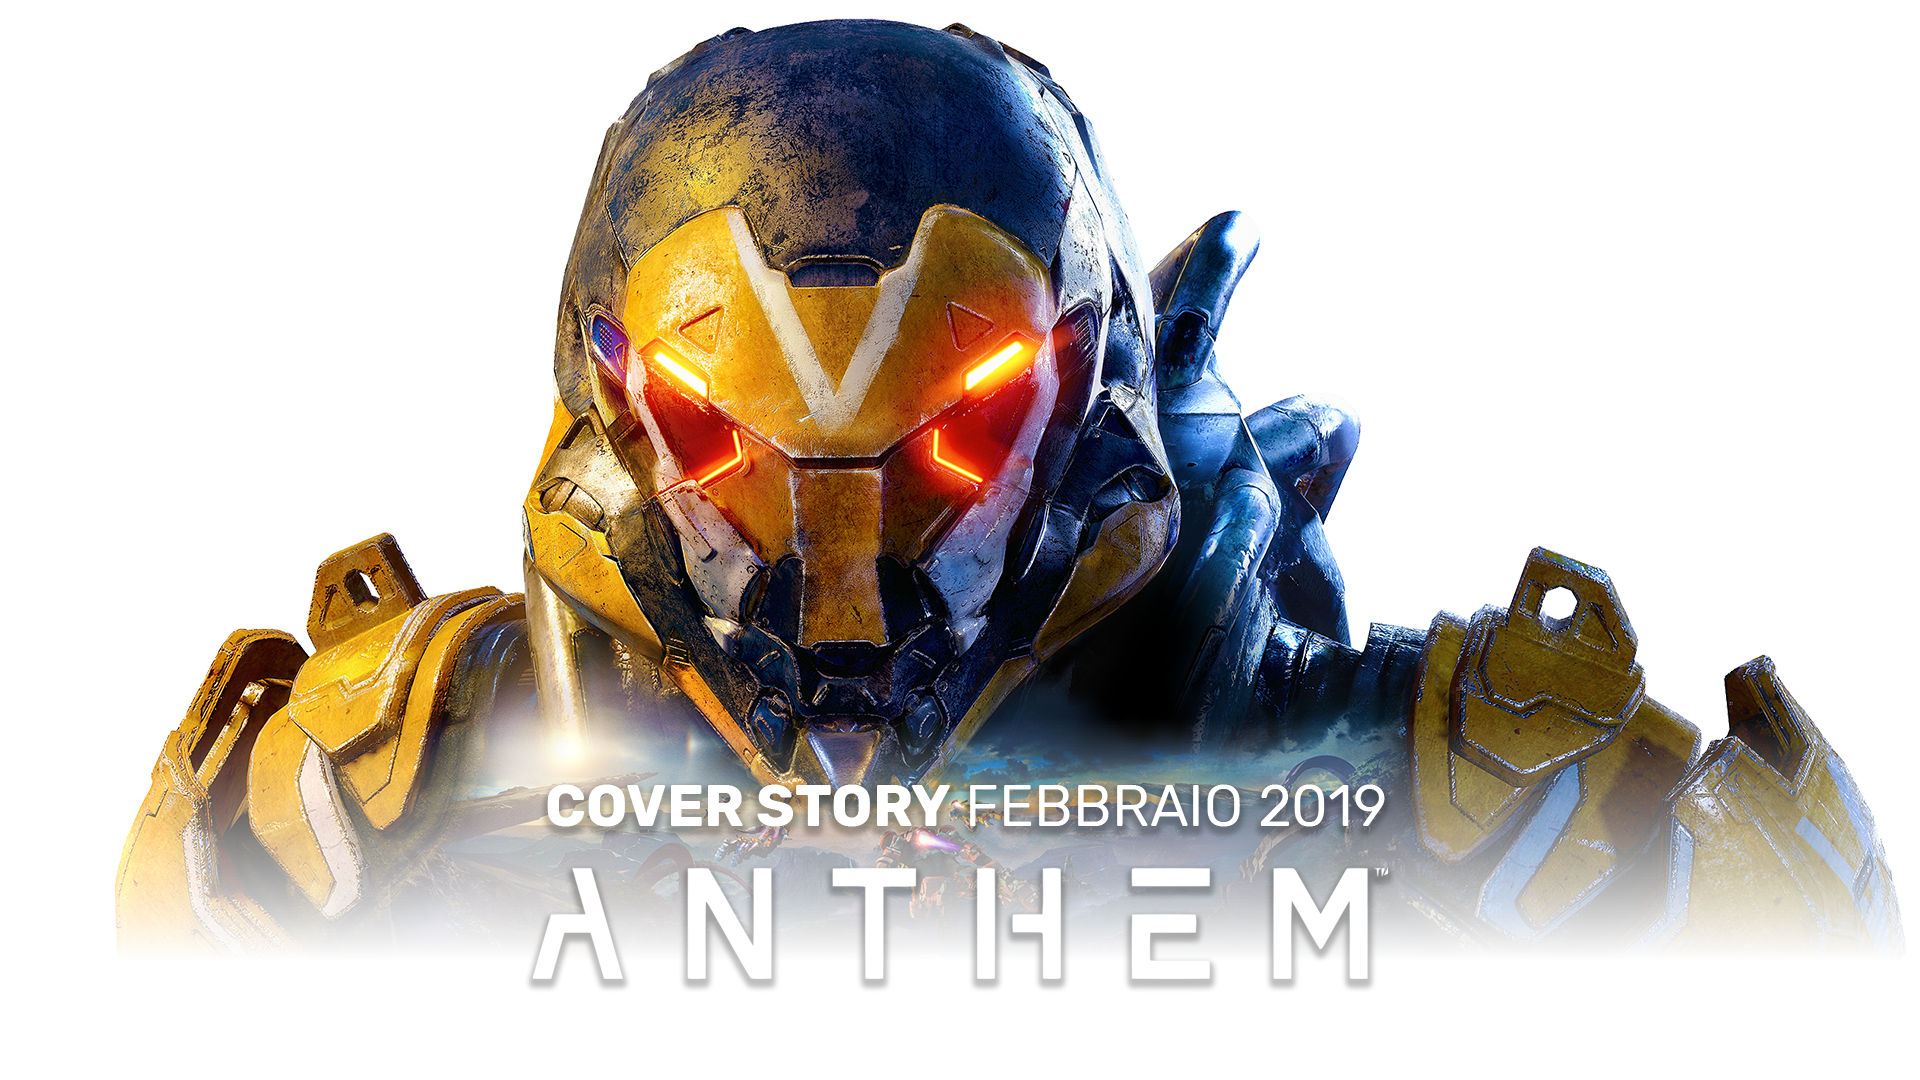 Cover Story: Anthem